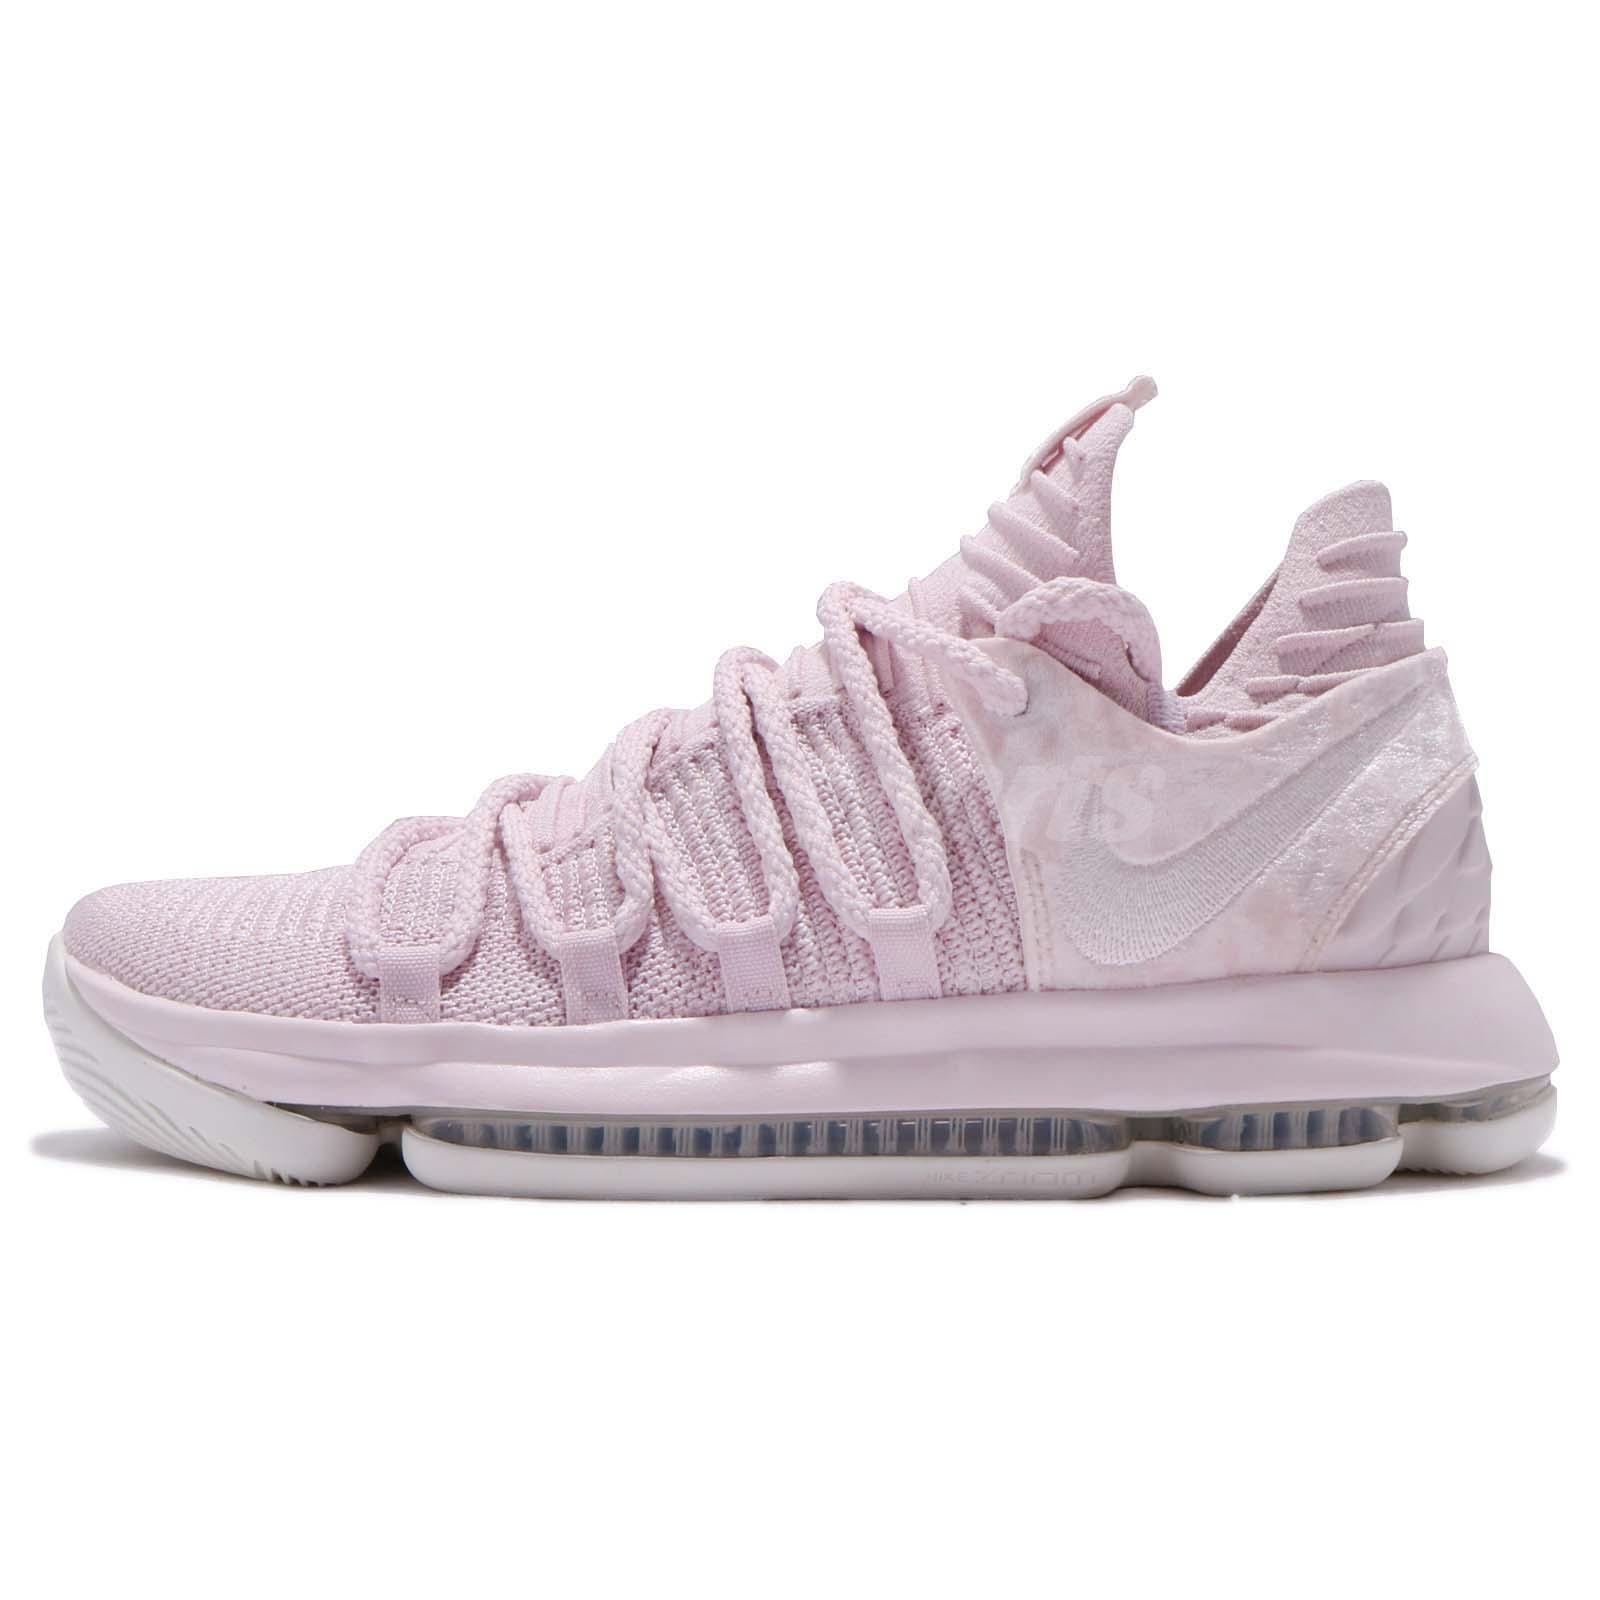 cheap for discount 4485f 822a1 canada nike zoom kd 10 ap ep x aunt pearl pink breast cancer kevin durant  aq4111